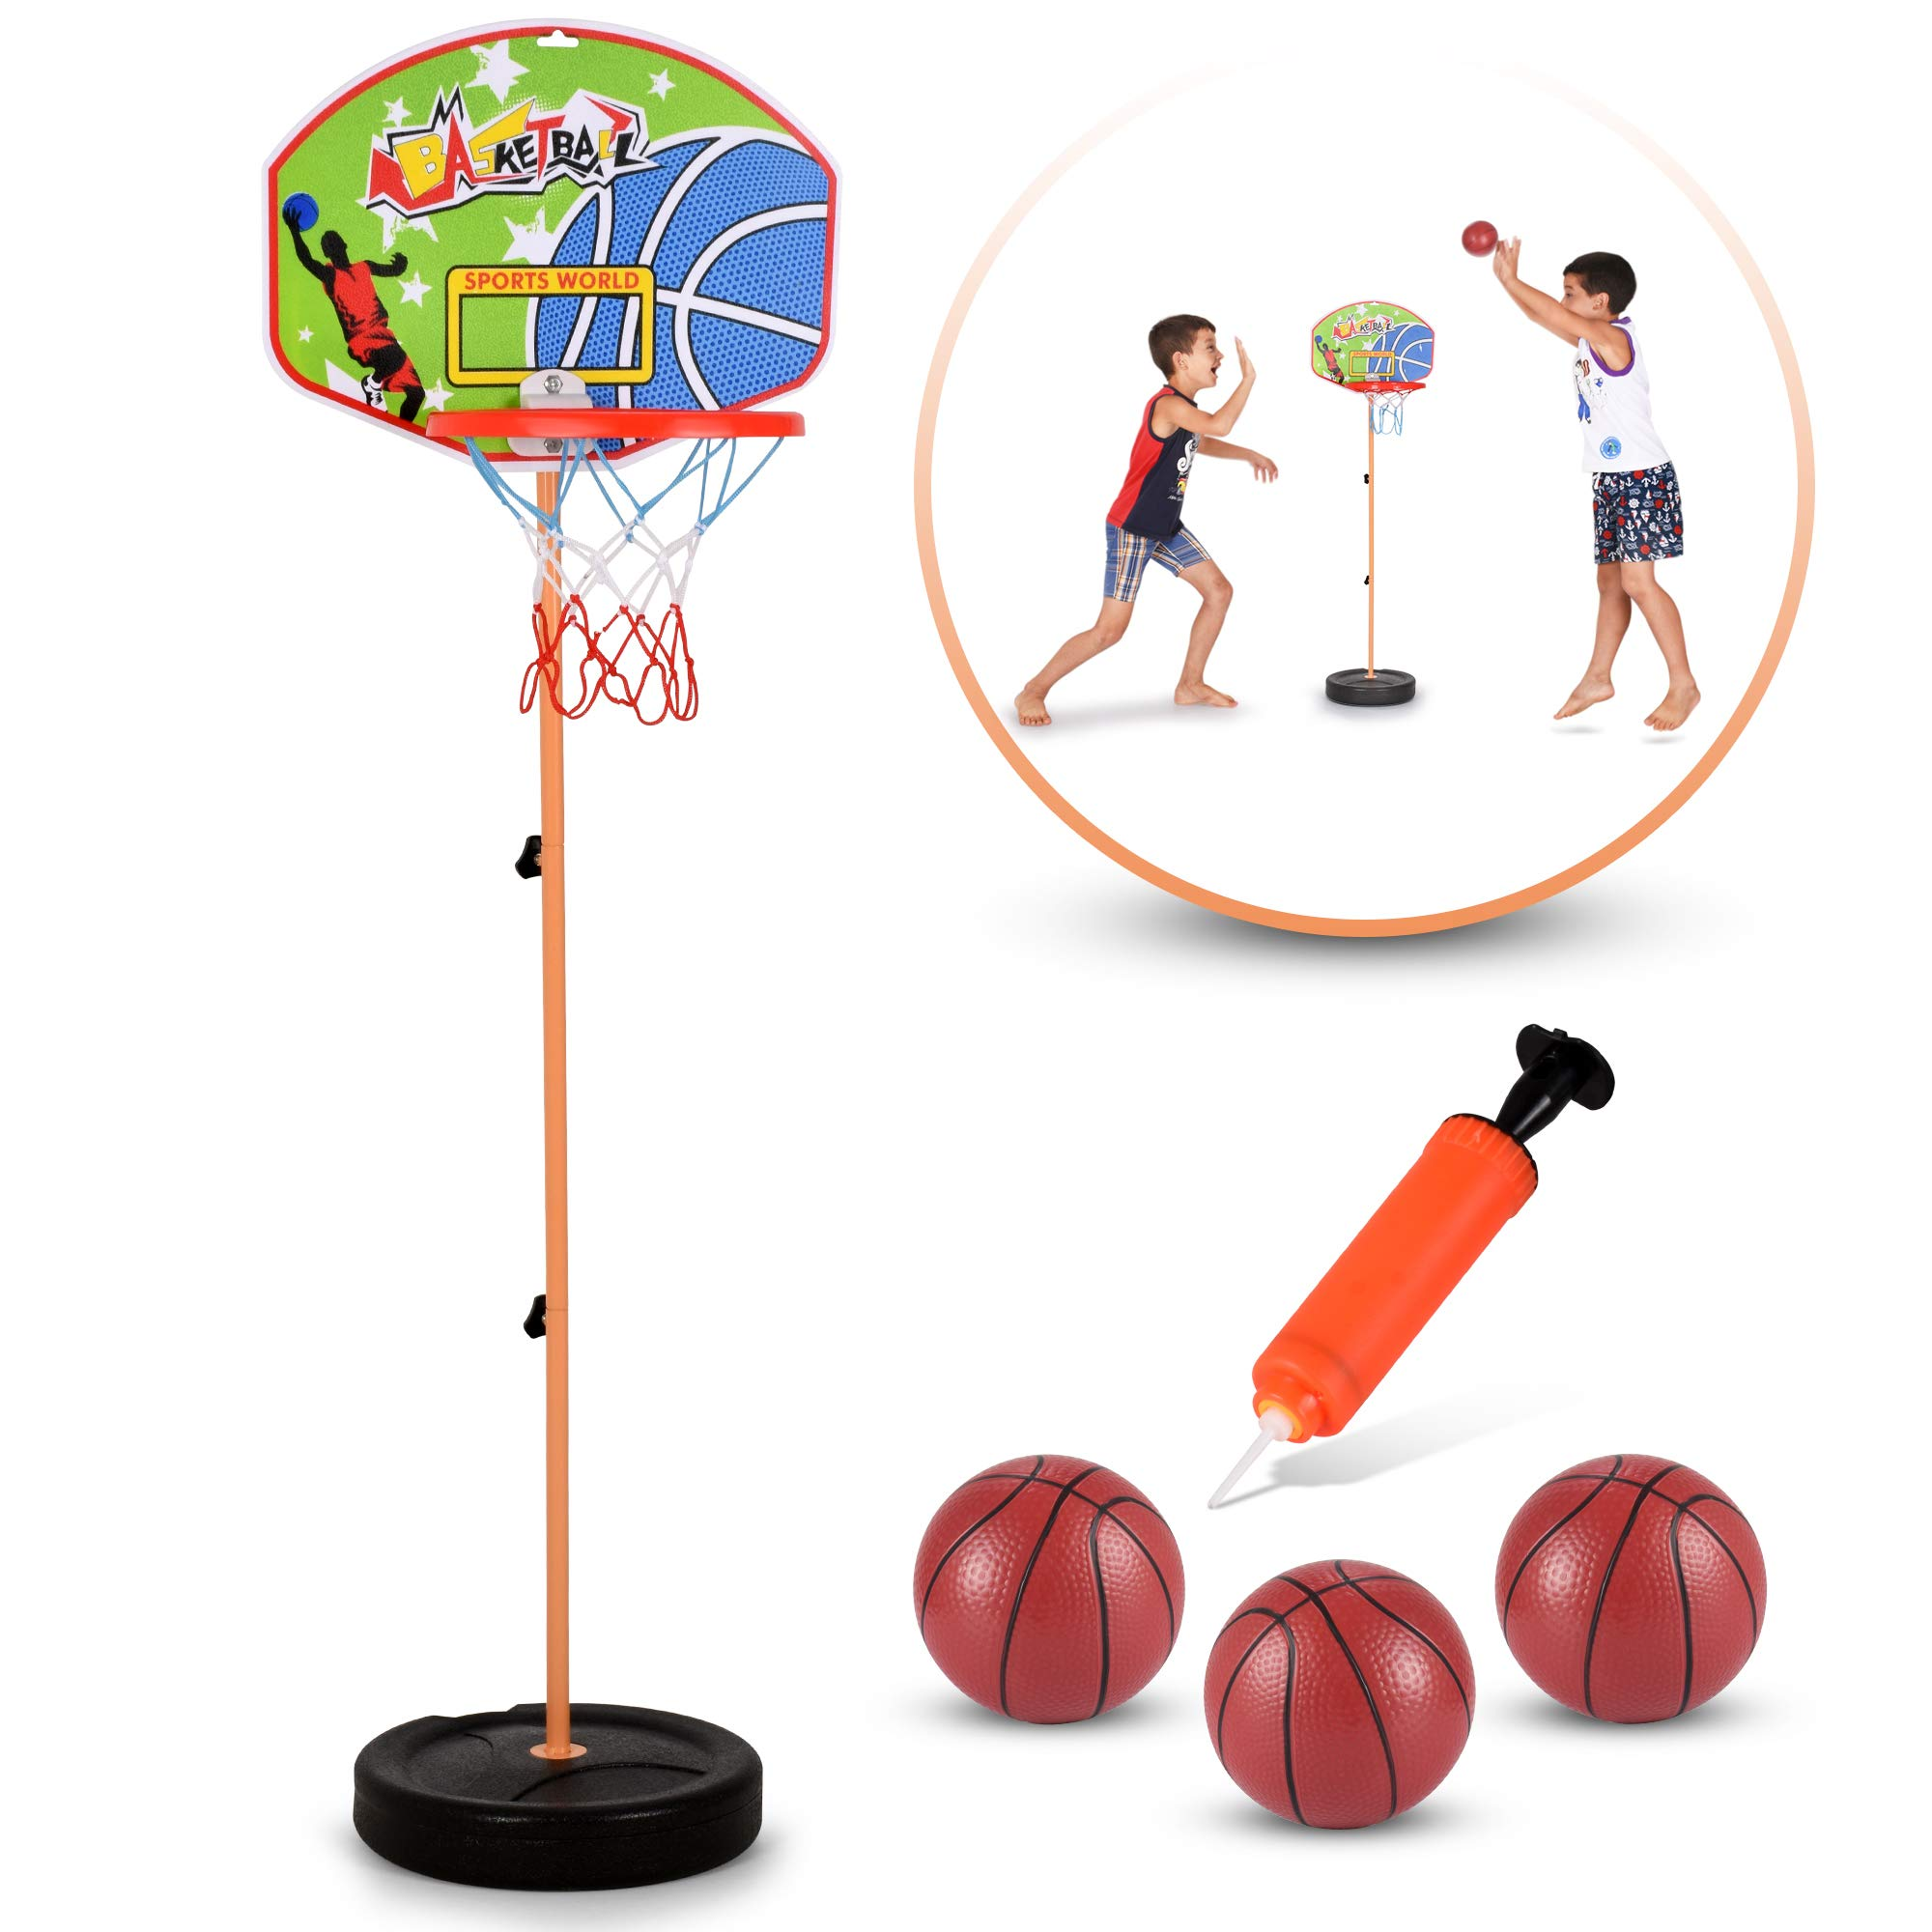 GoBroBrand Toddler Basketball Hoop for Boys /& Girls Age 3-12 Years Old Kids Easy Score Basketball Game with Adjustable Height 6 Height Settings /& Pump Included